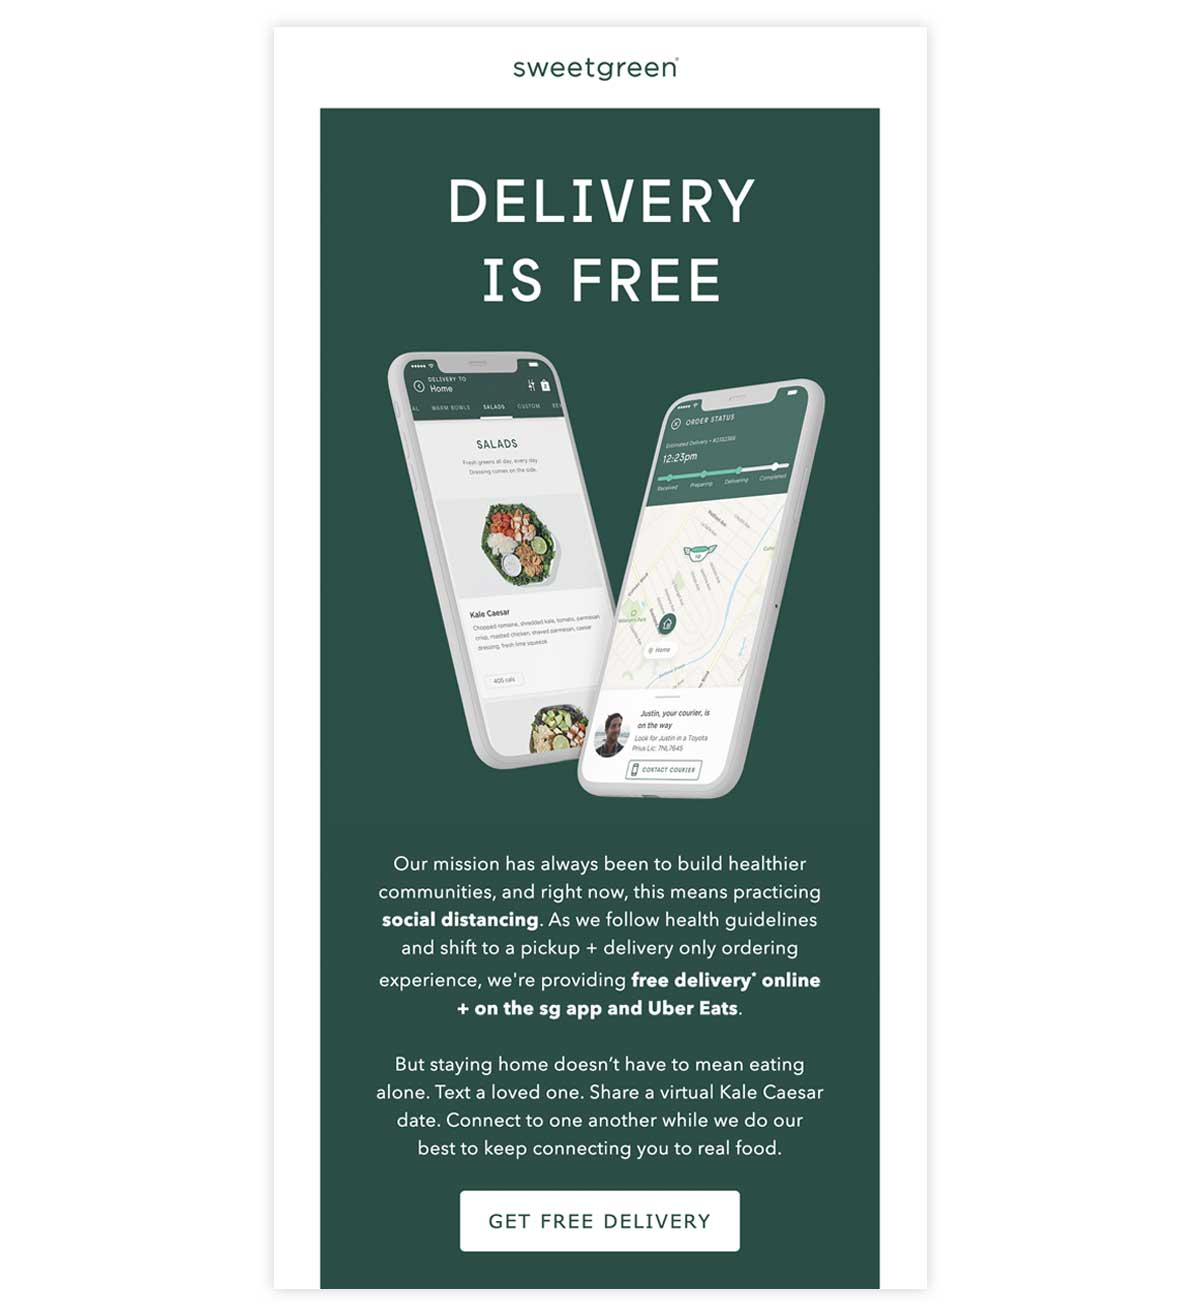 sweetgreen email promoting free delivery.